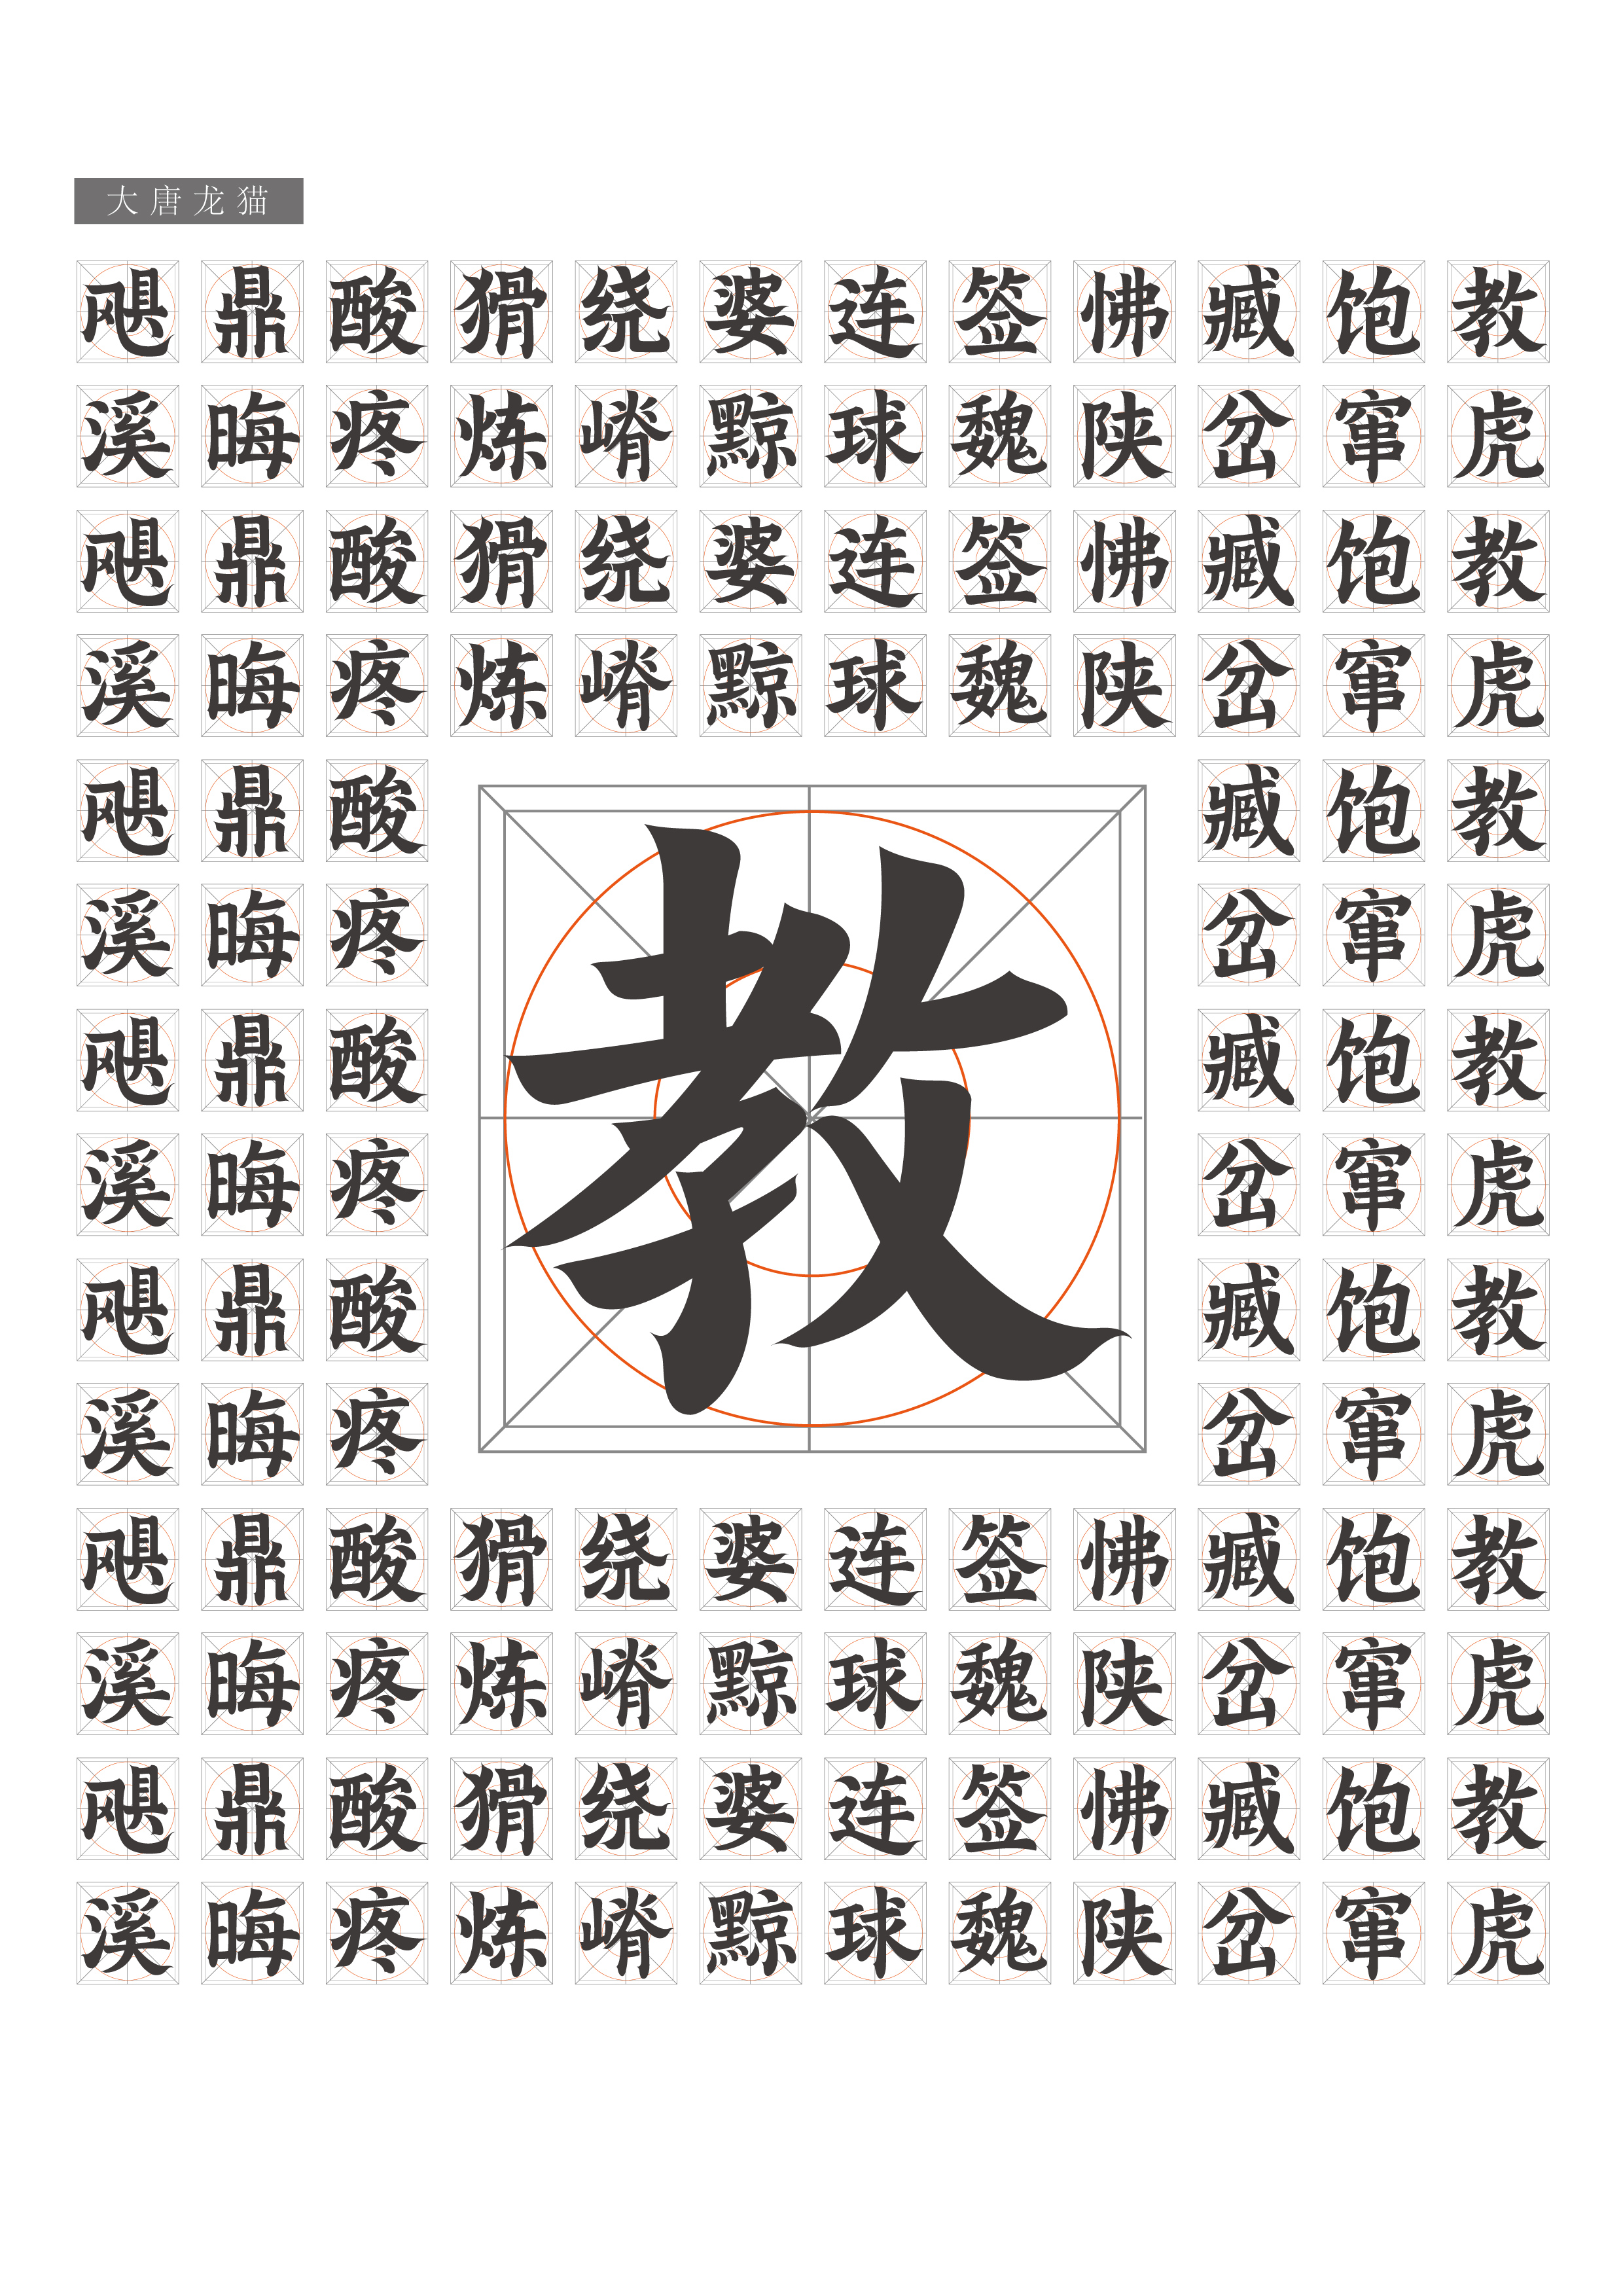 6P Font Creativity- Da Tang Long Mao